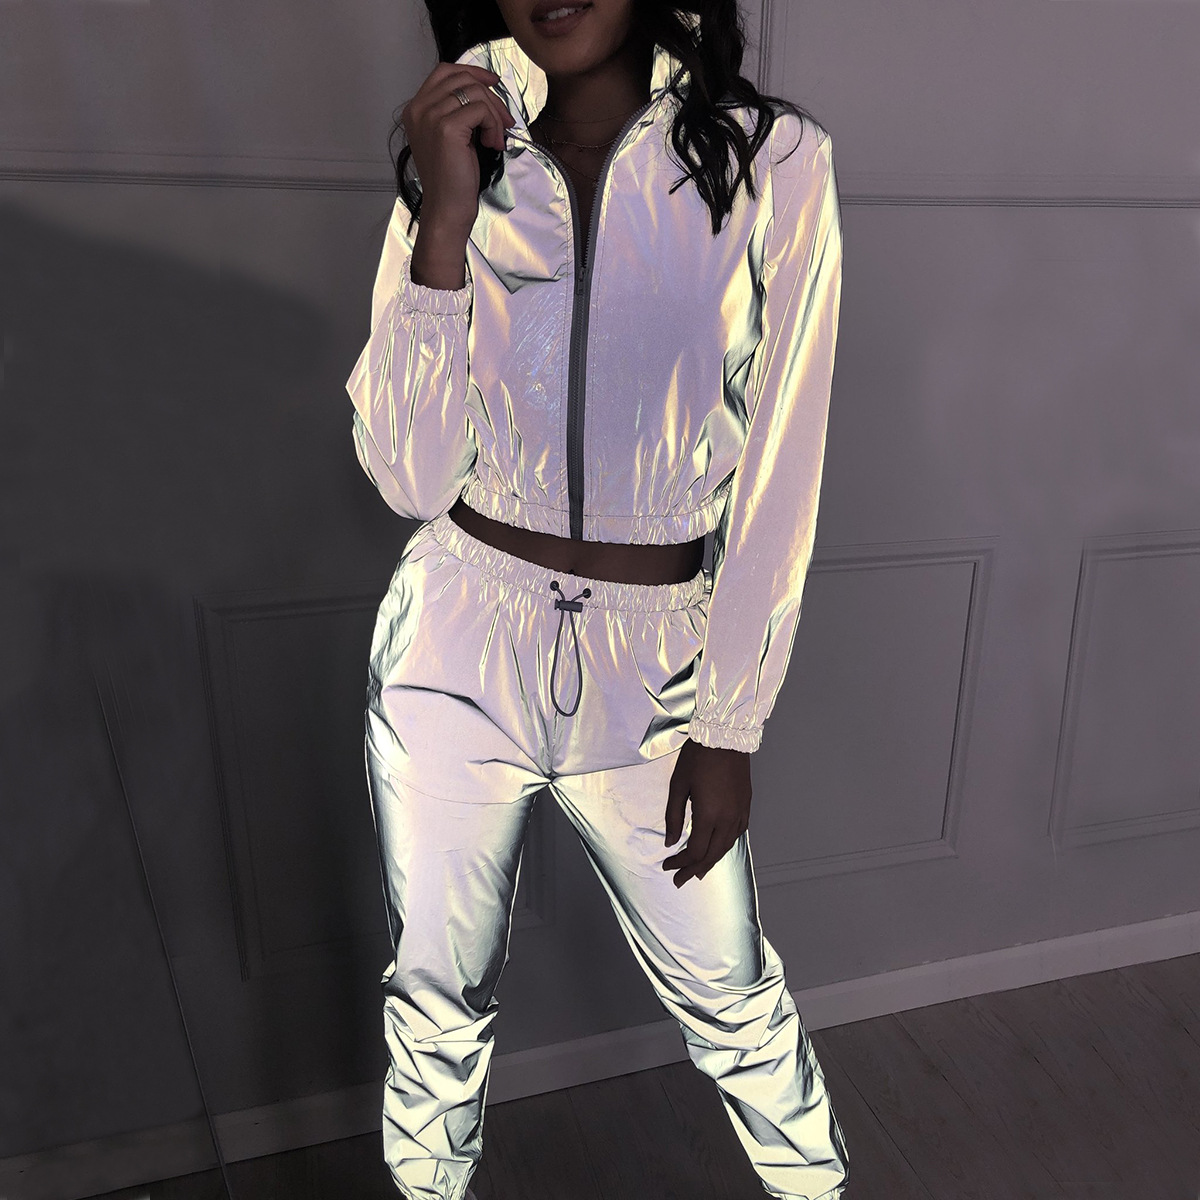 Tracksuits-Set Reflective-Jacket Long-Pants Zipper Shine Fashion Ladies 2piece Women title=